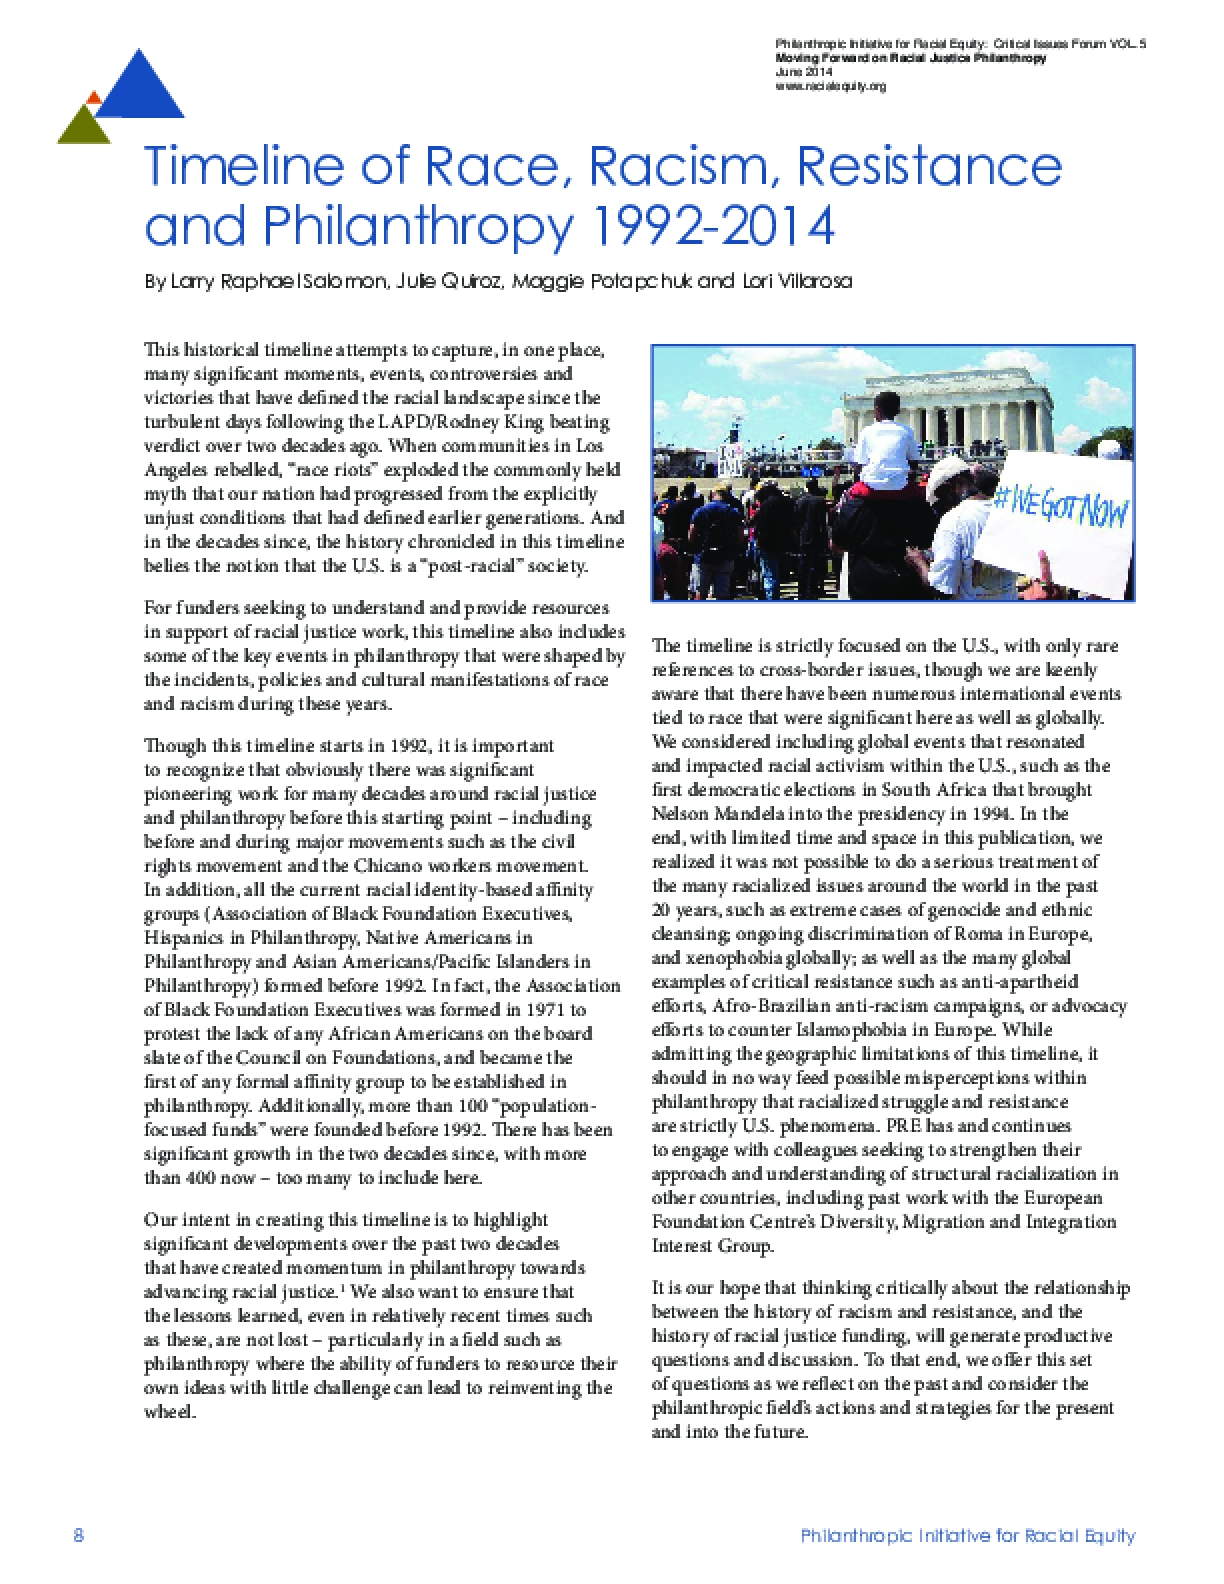 Timeline of Race, Racism, Resistance and Philanthropy 1992-2014